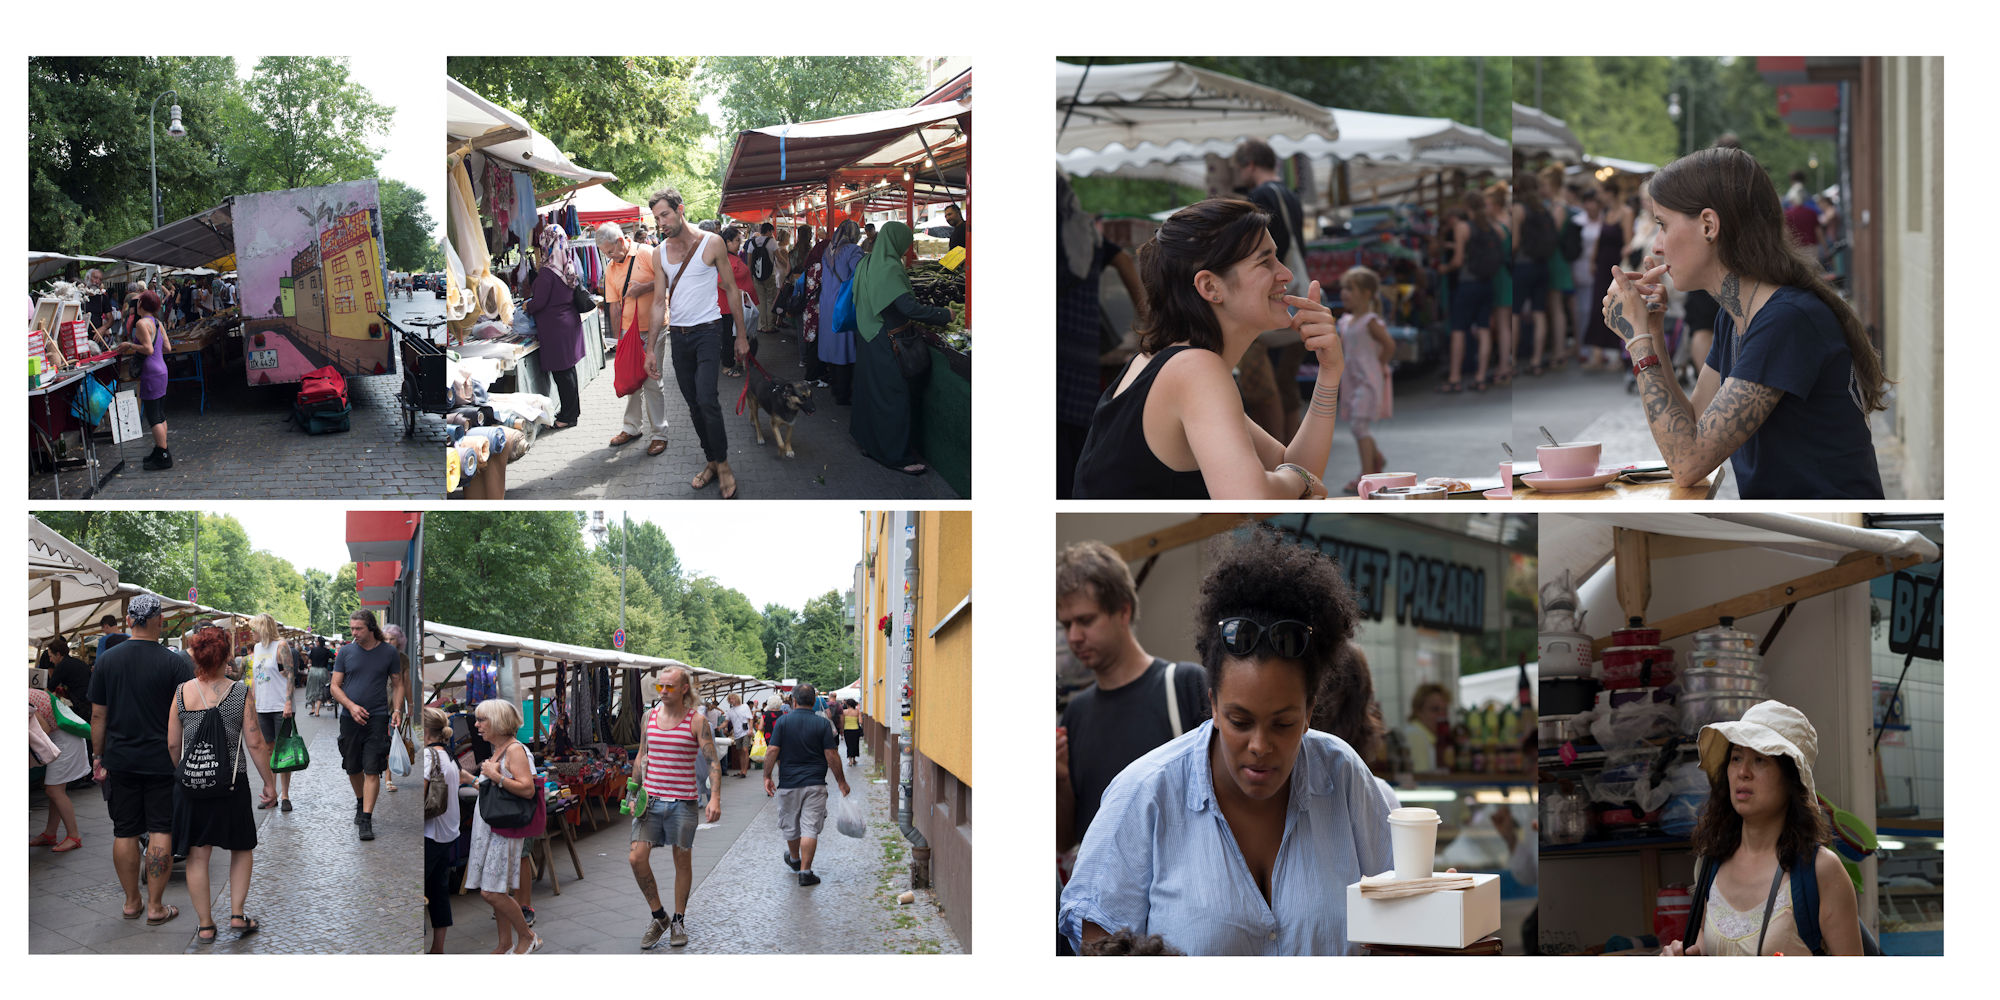 Berlin-2018 Album - Page 32: Markets - Page 23: Pausing for food